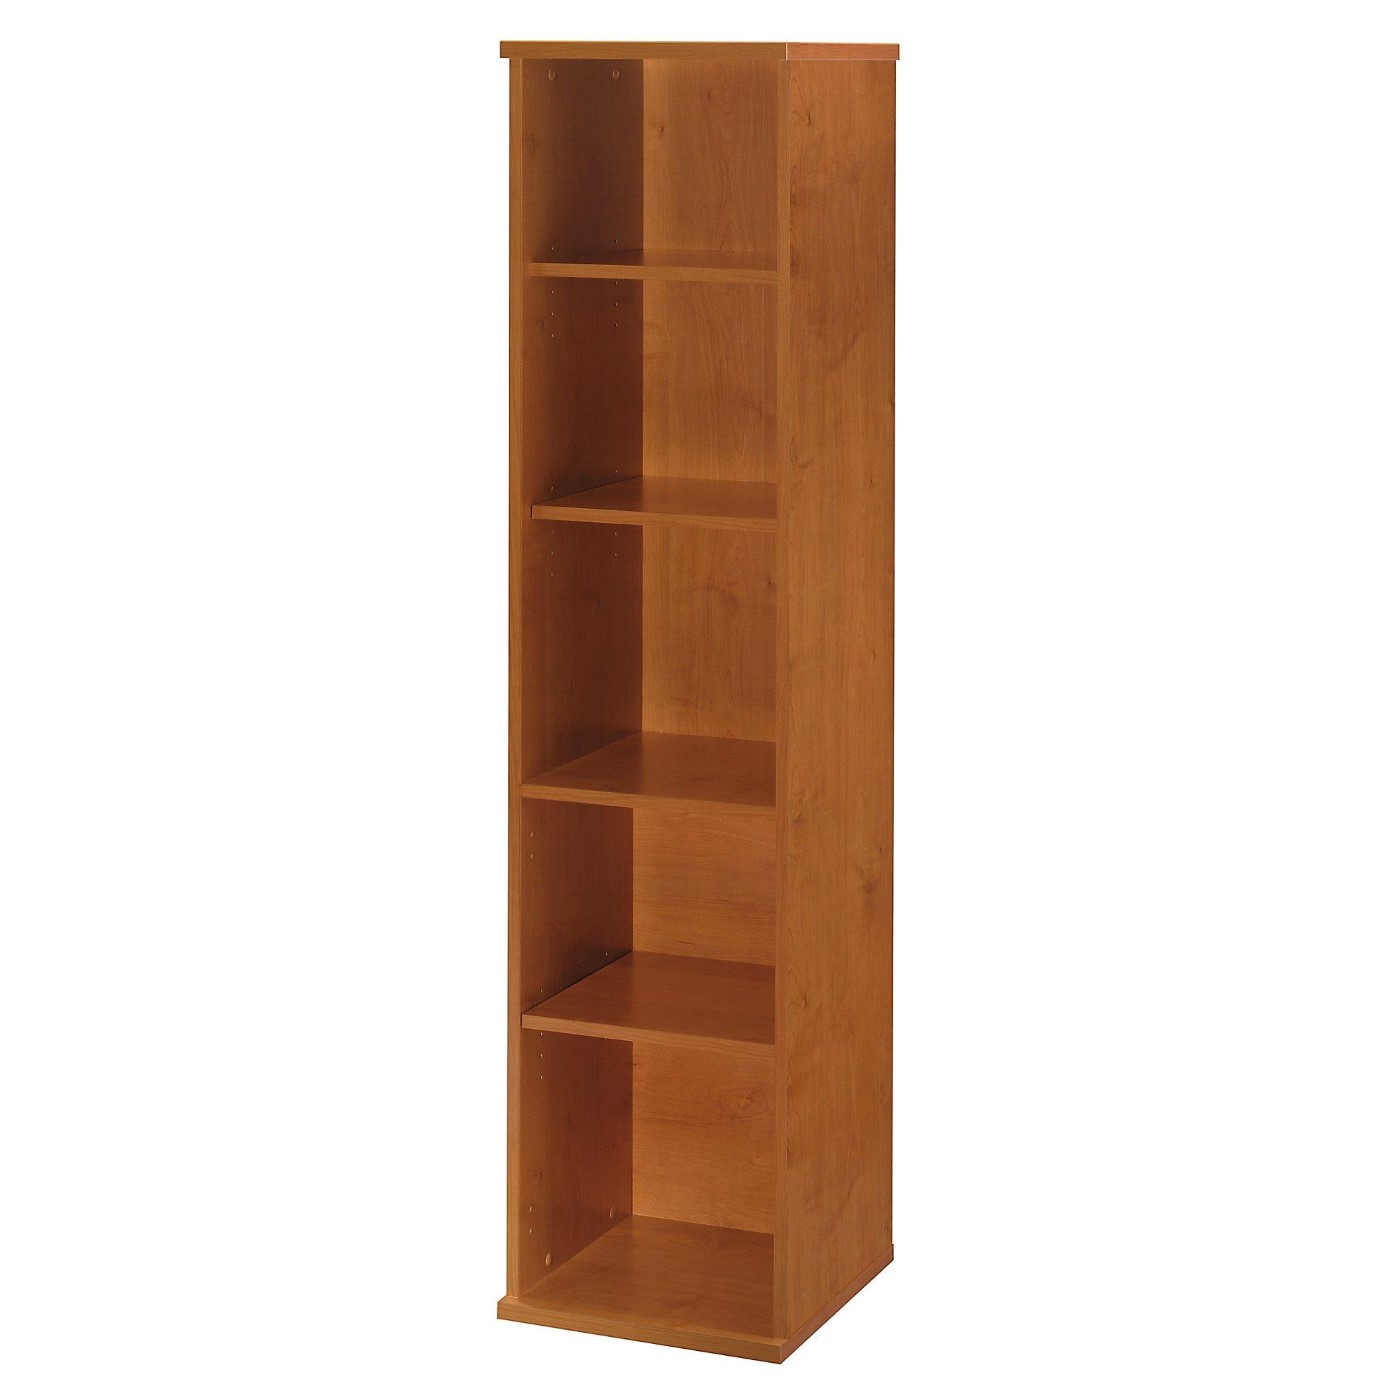 <font color=#c60><b>BUSH BUSINESS FURNITURE SERIES C 18W 5 SHELF BOOKCASE. FREE SHIPPING</font></b></font></b>